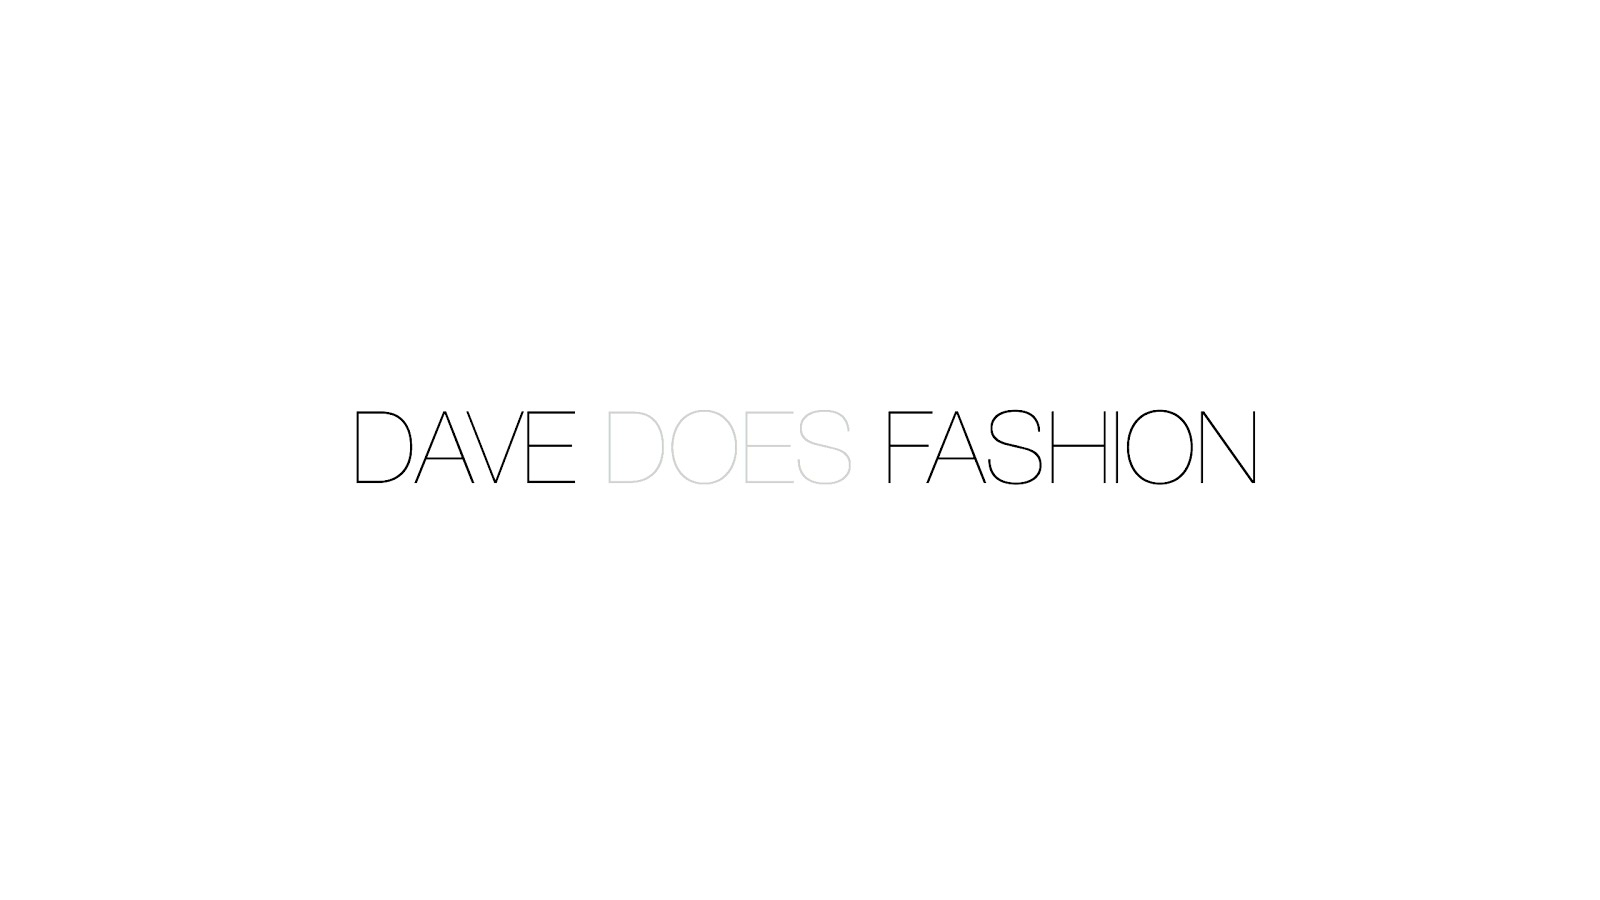 DAVE DOES FASHION